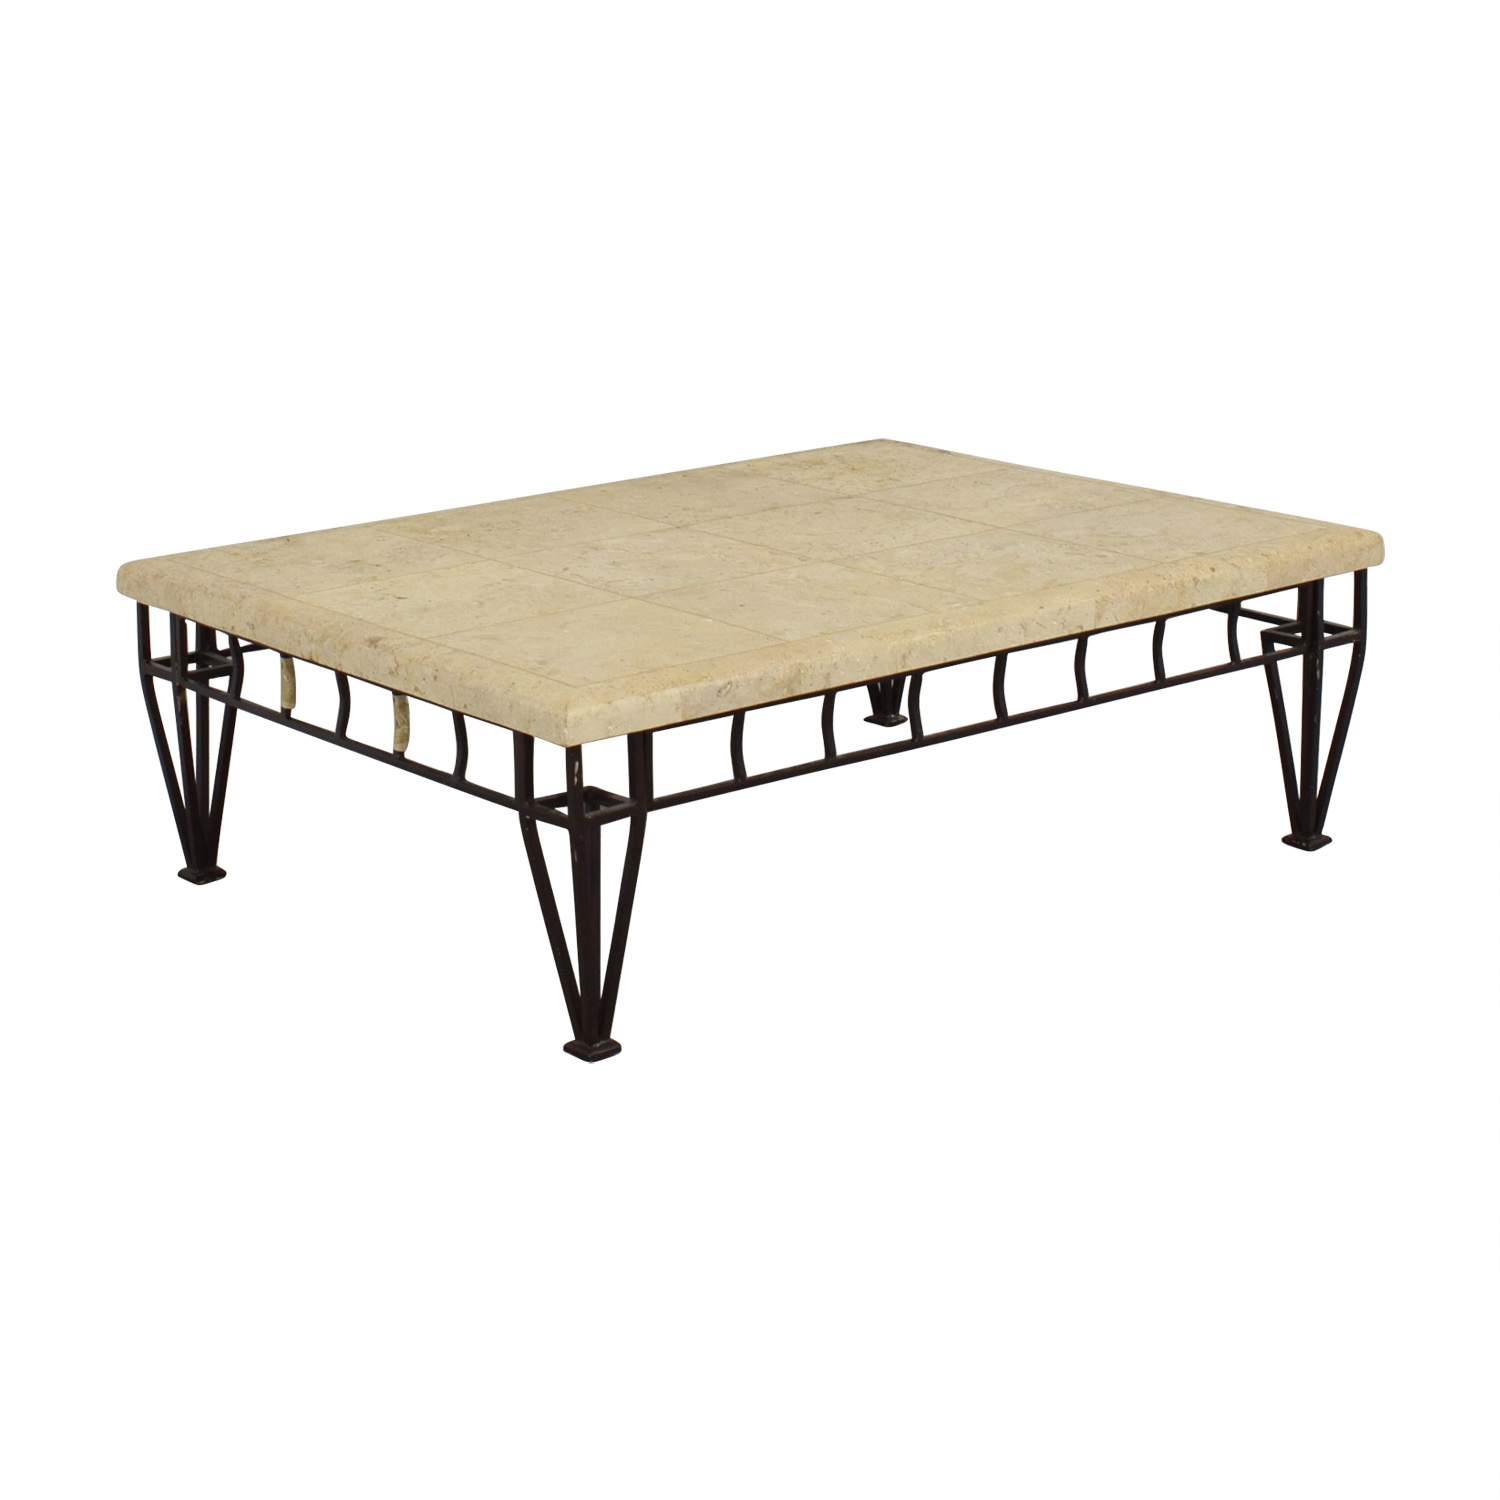 ... Tables; Stone Top Coffee Table Discount ...